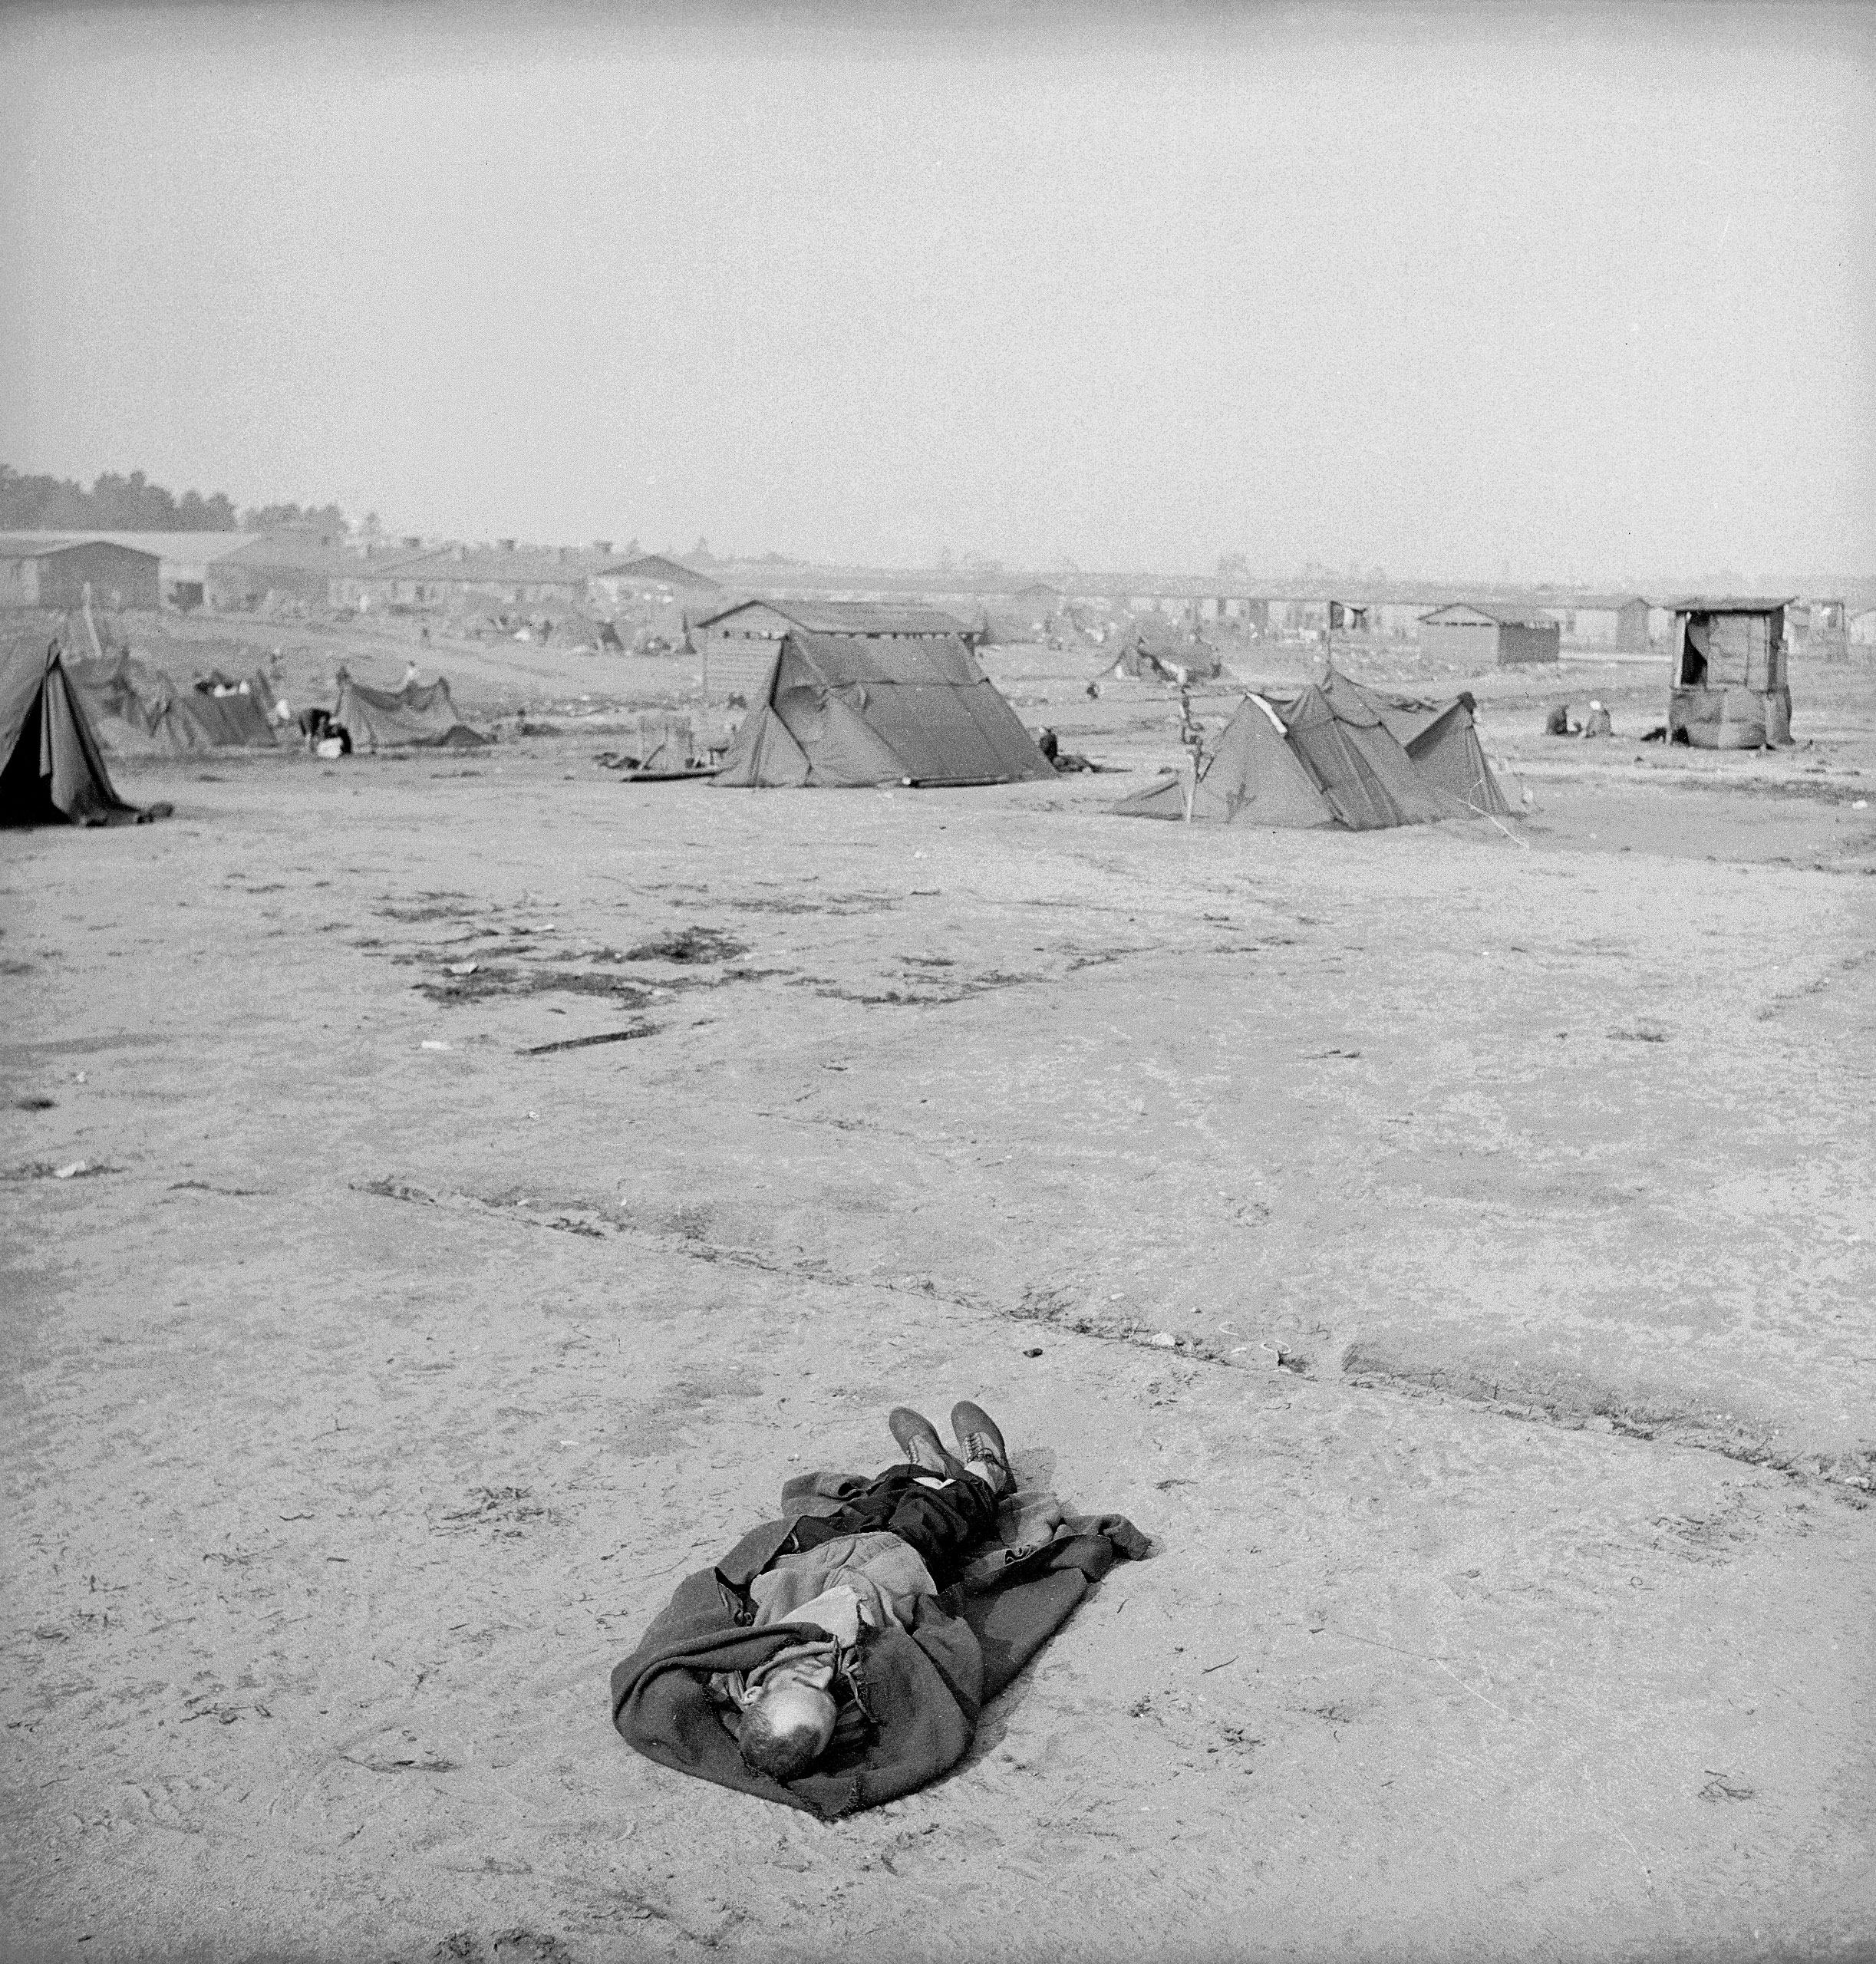 The body of a dead inmate at Bergen-Belsen, photographed shortly after the liberation of the camp by Allied troop, April 1945.